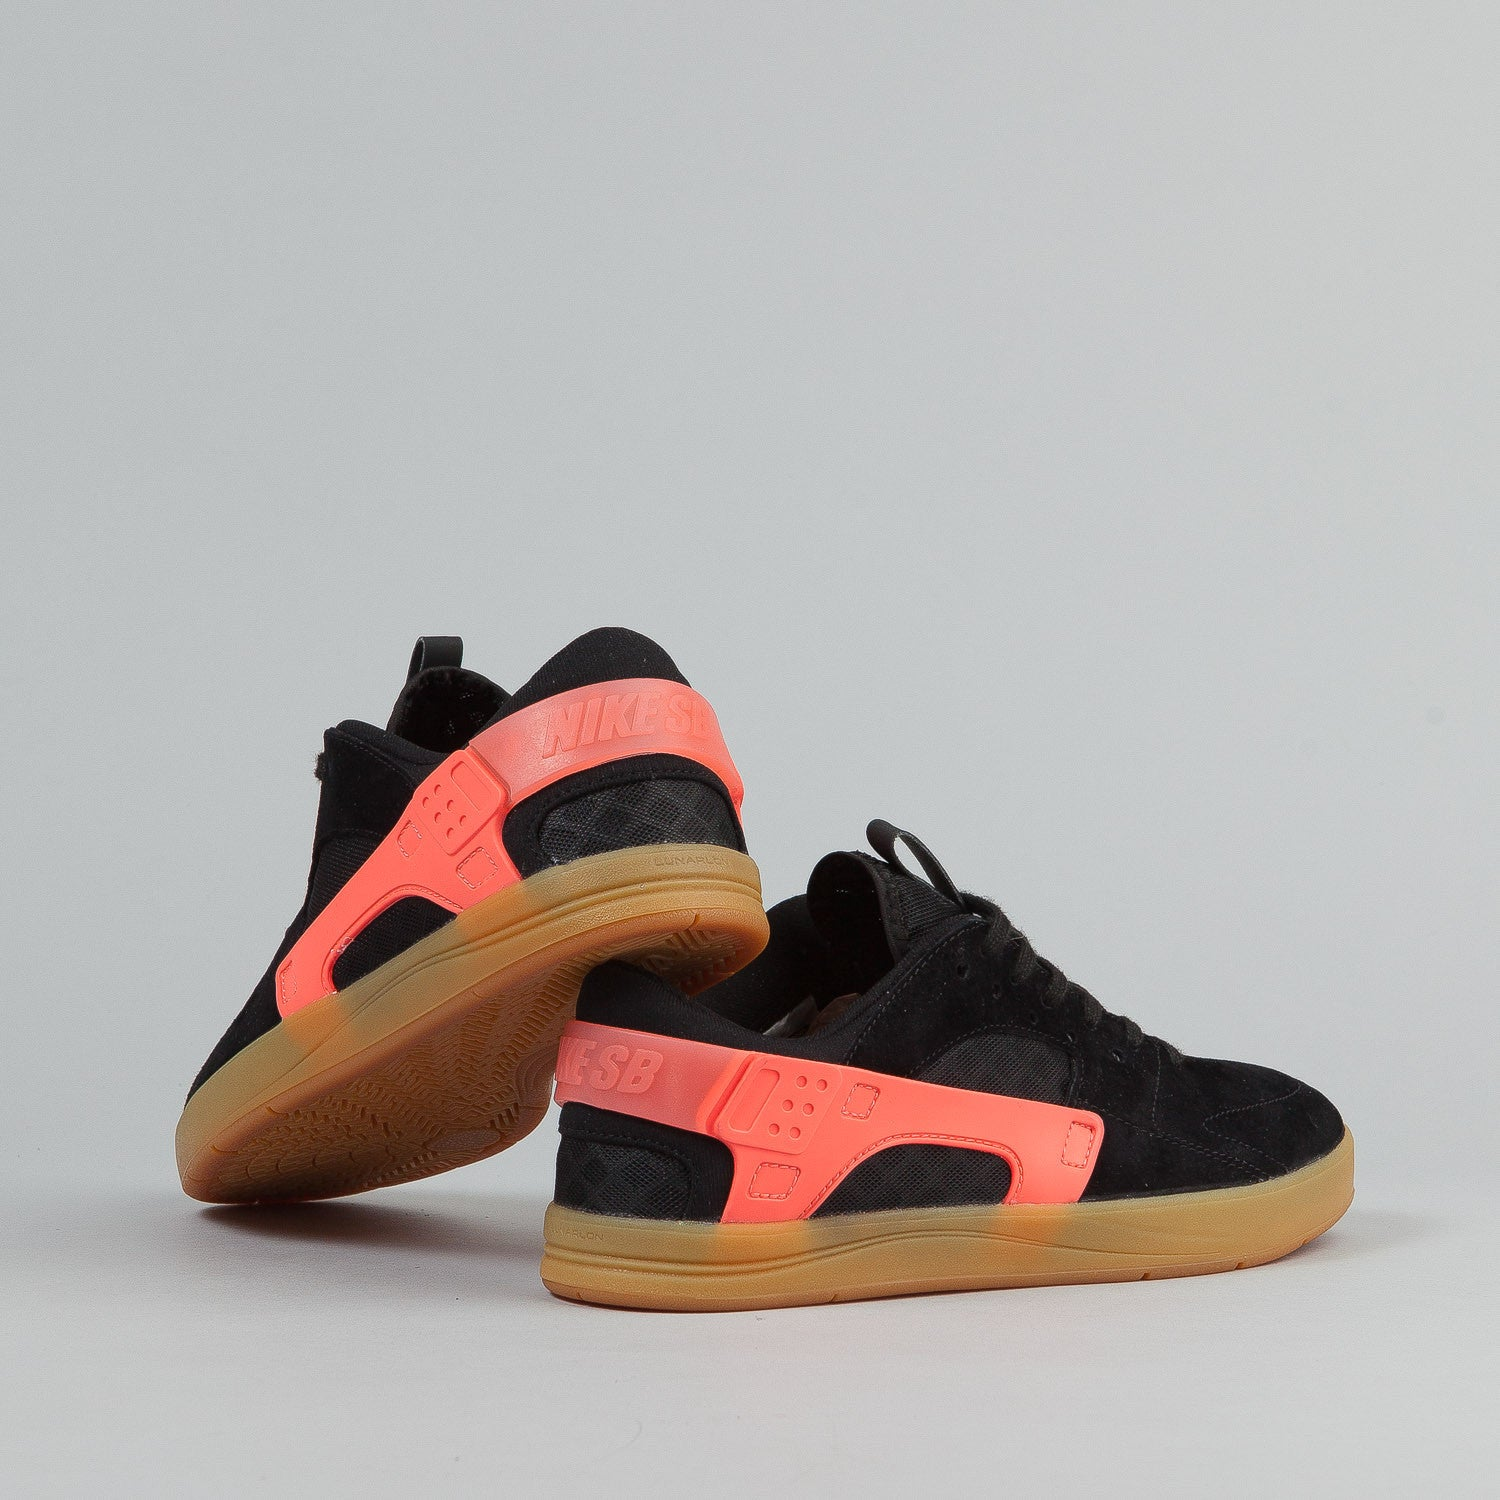 Nike SB Eric Koston Huarache Shoes - Black / Hot Lava / Gum Light Brown